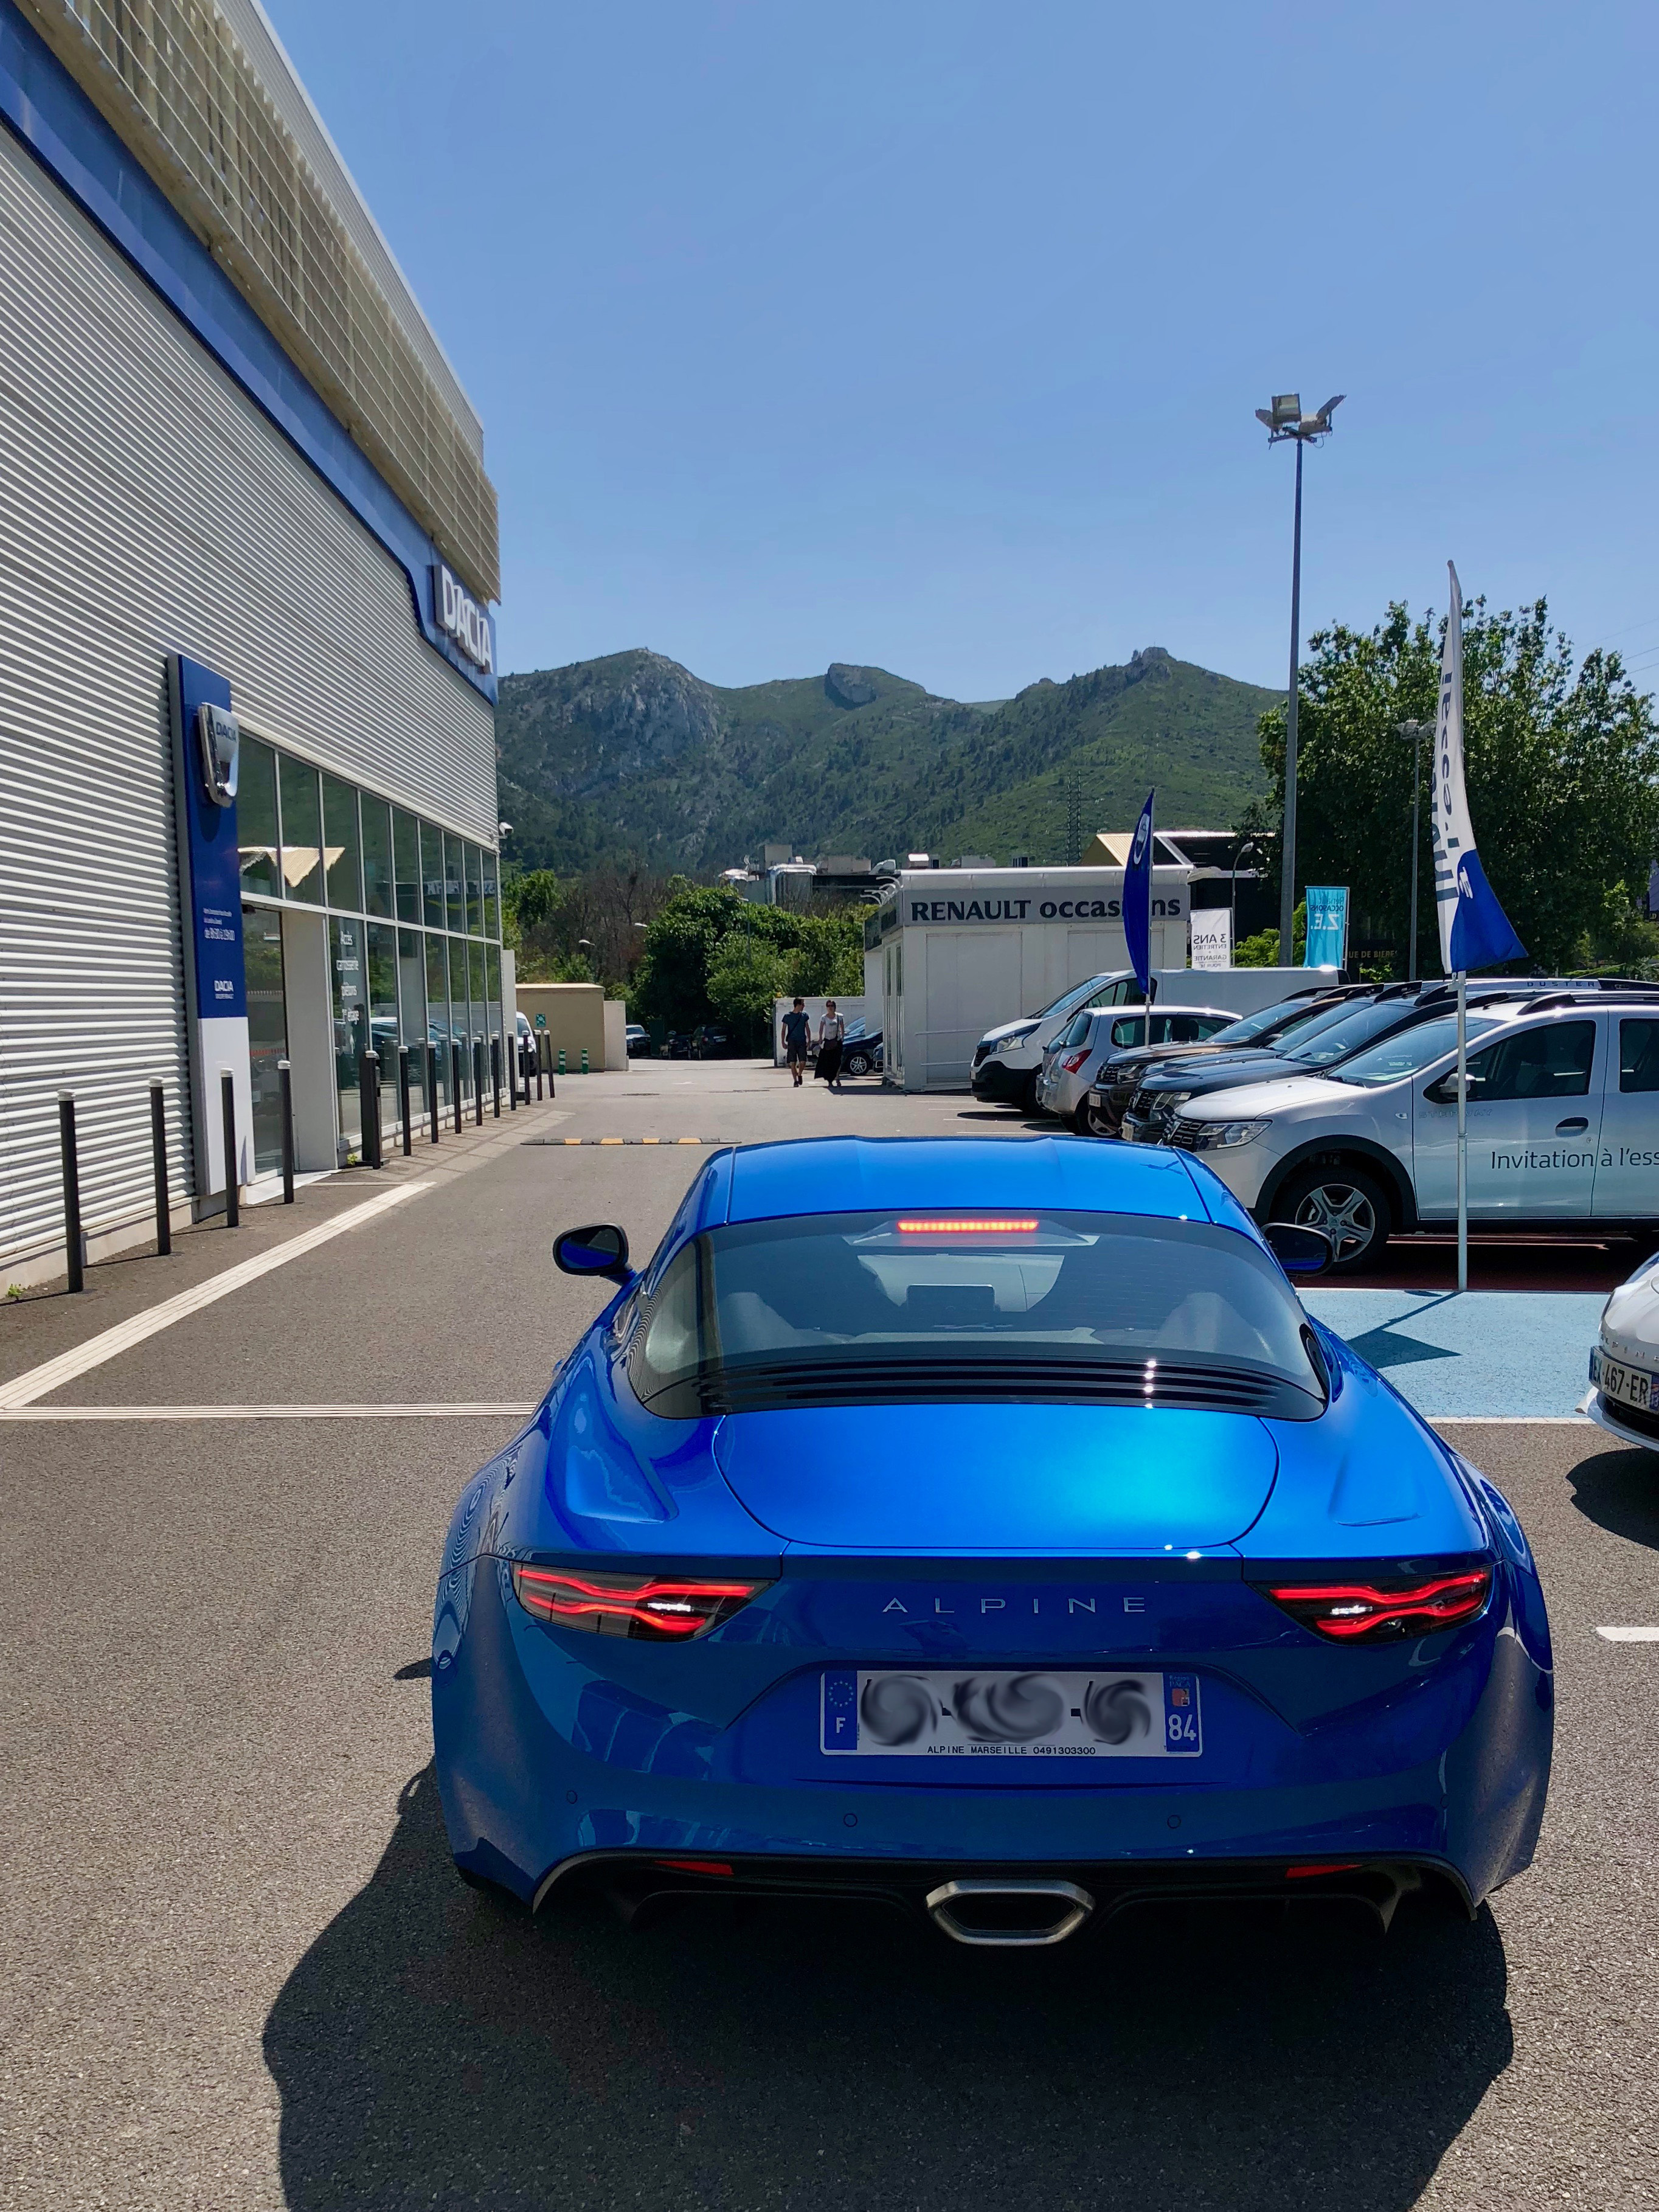 2017 - [Alpine] A110 [AS1] - Page 3 Img_7095-5488968